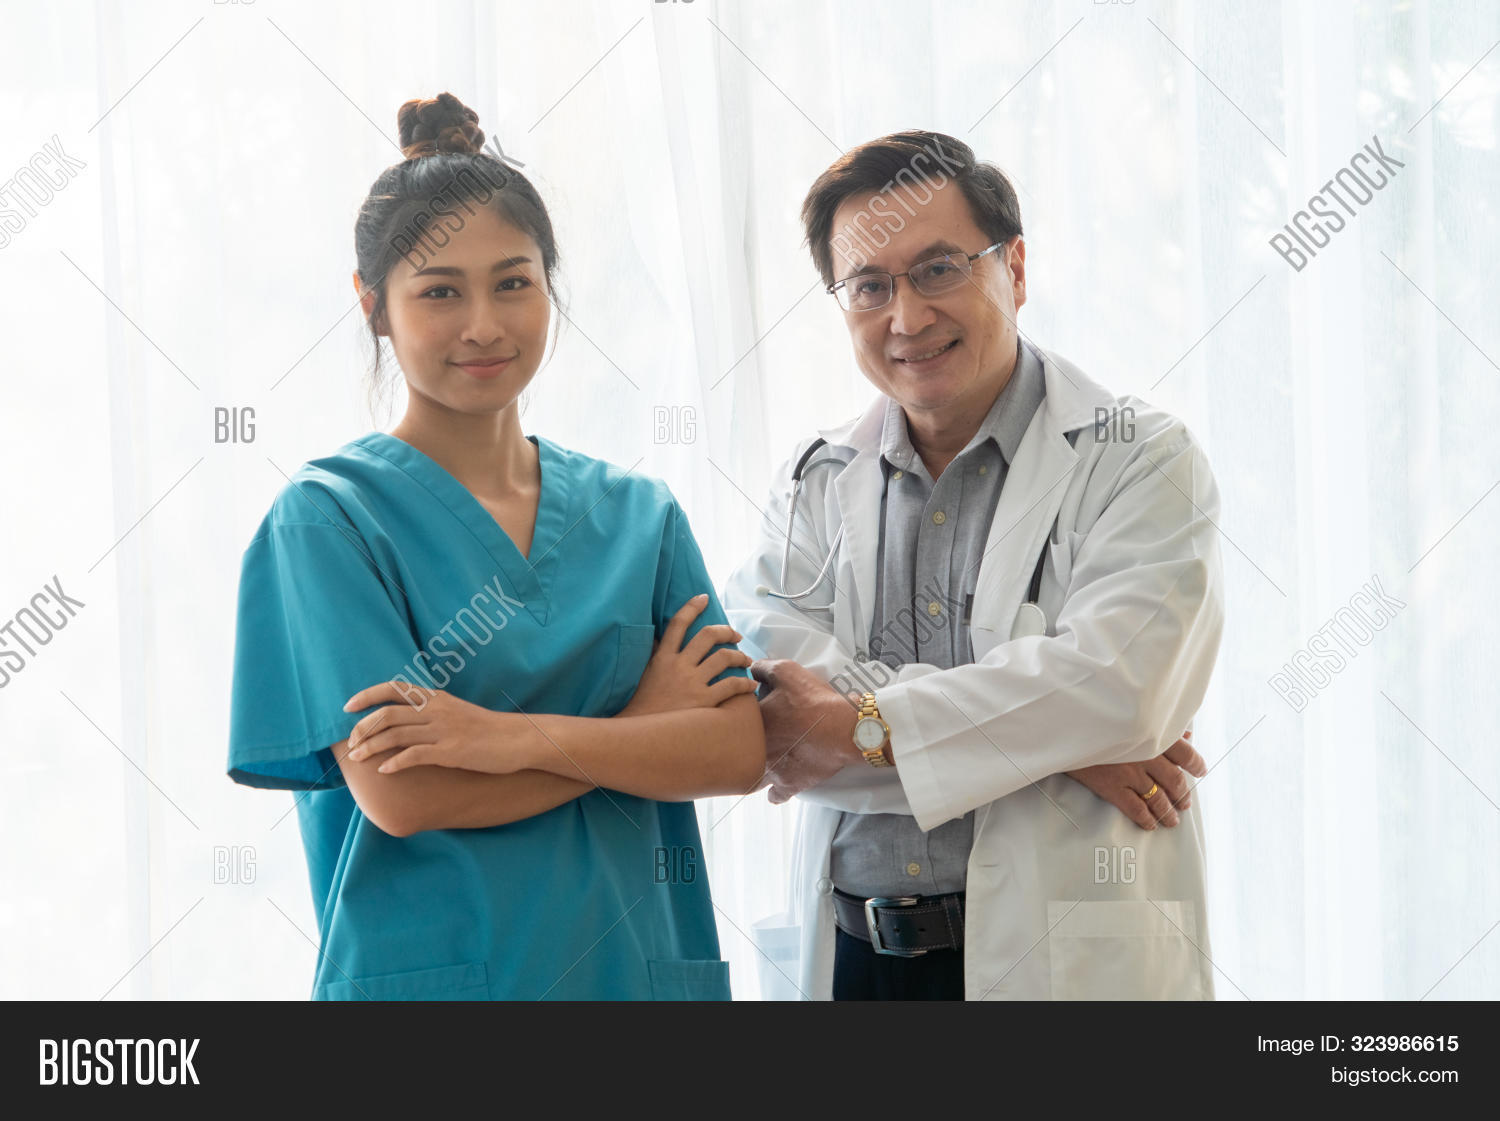 Medical People. Doctor And Nurse In Hospital.